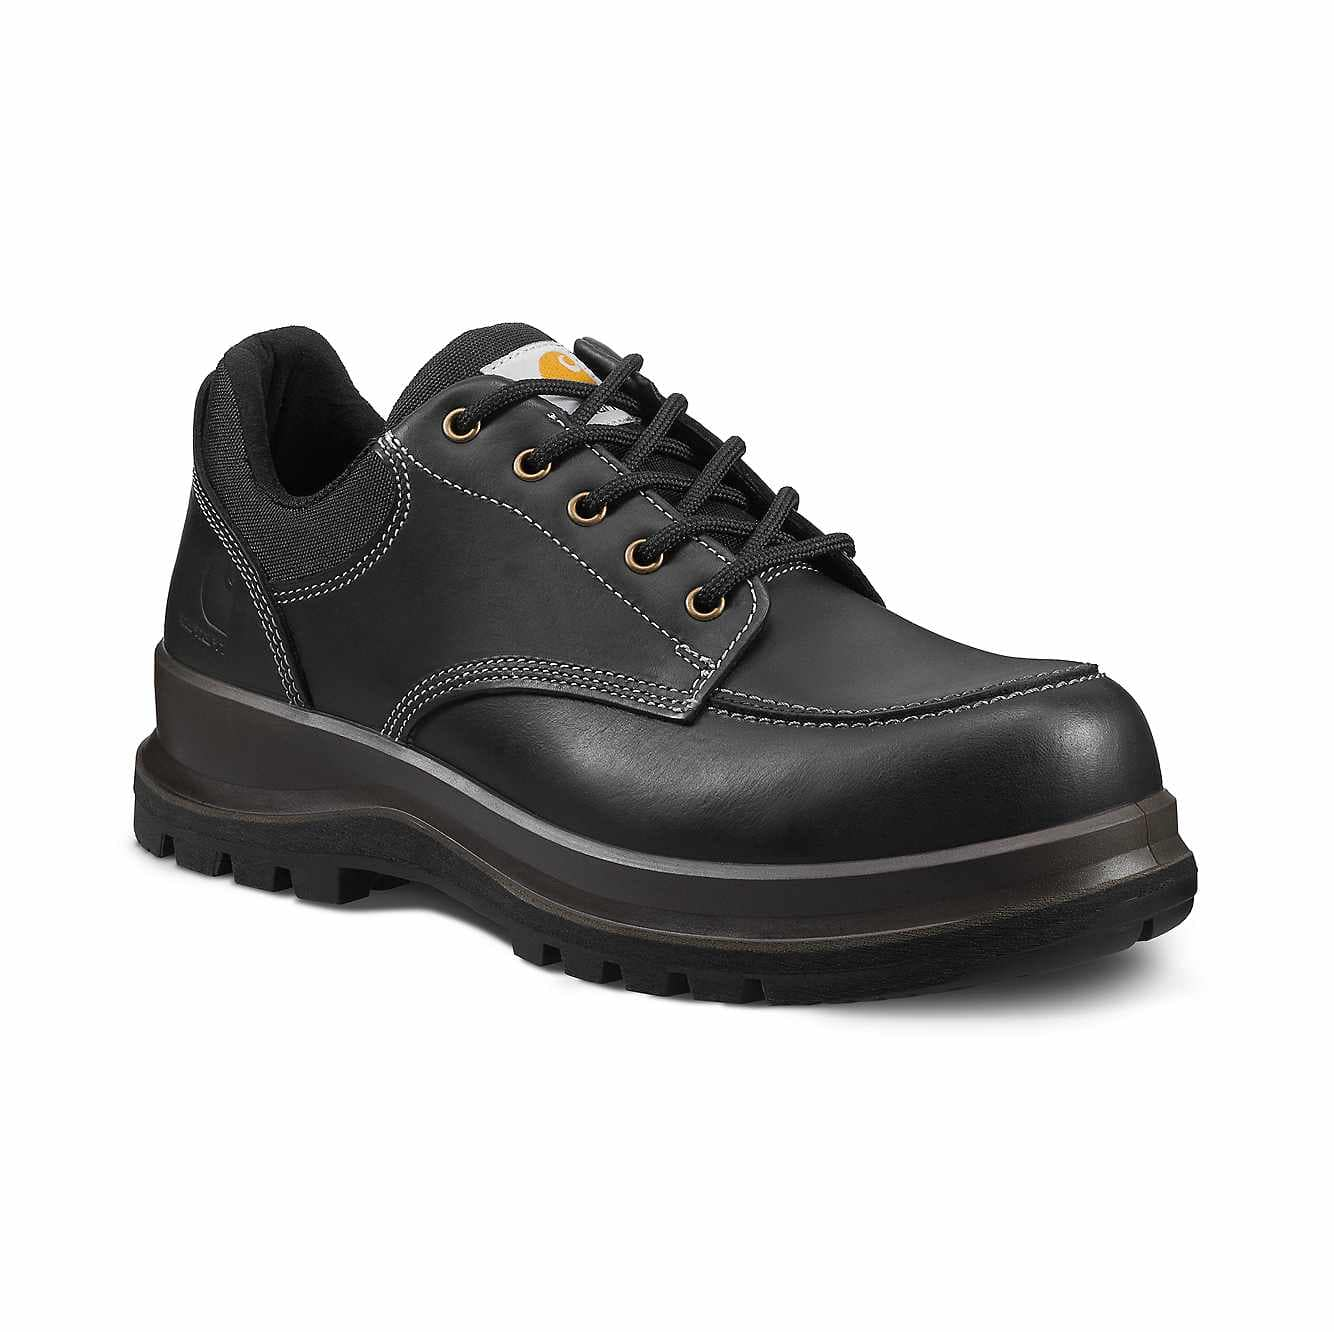 Picture of HAMILTON RUGGED FLEX® S3 SAFETY SHOE